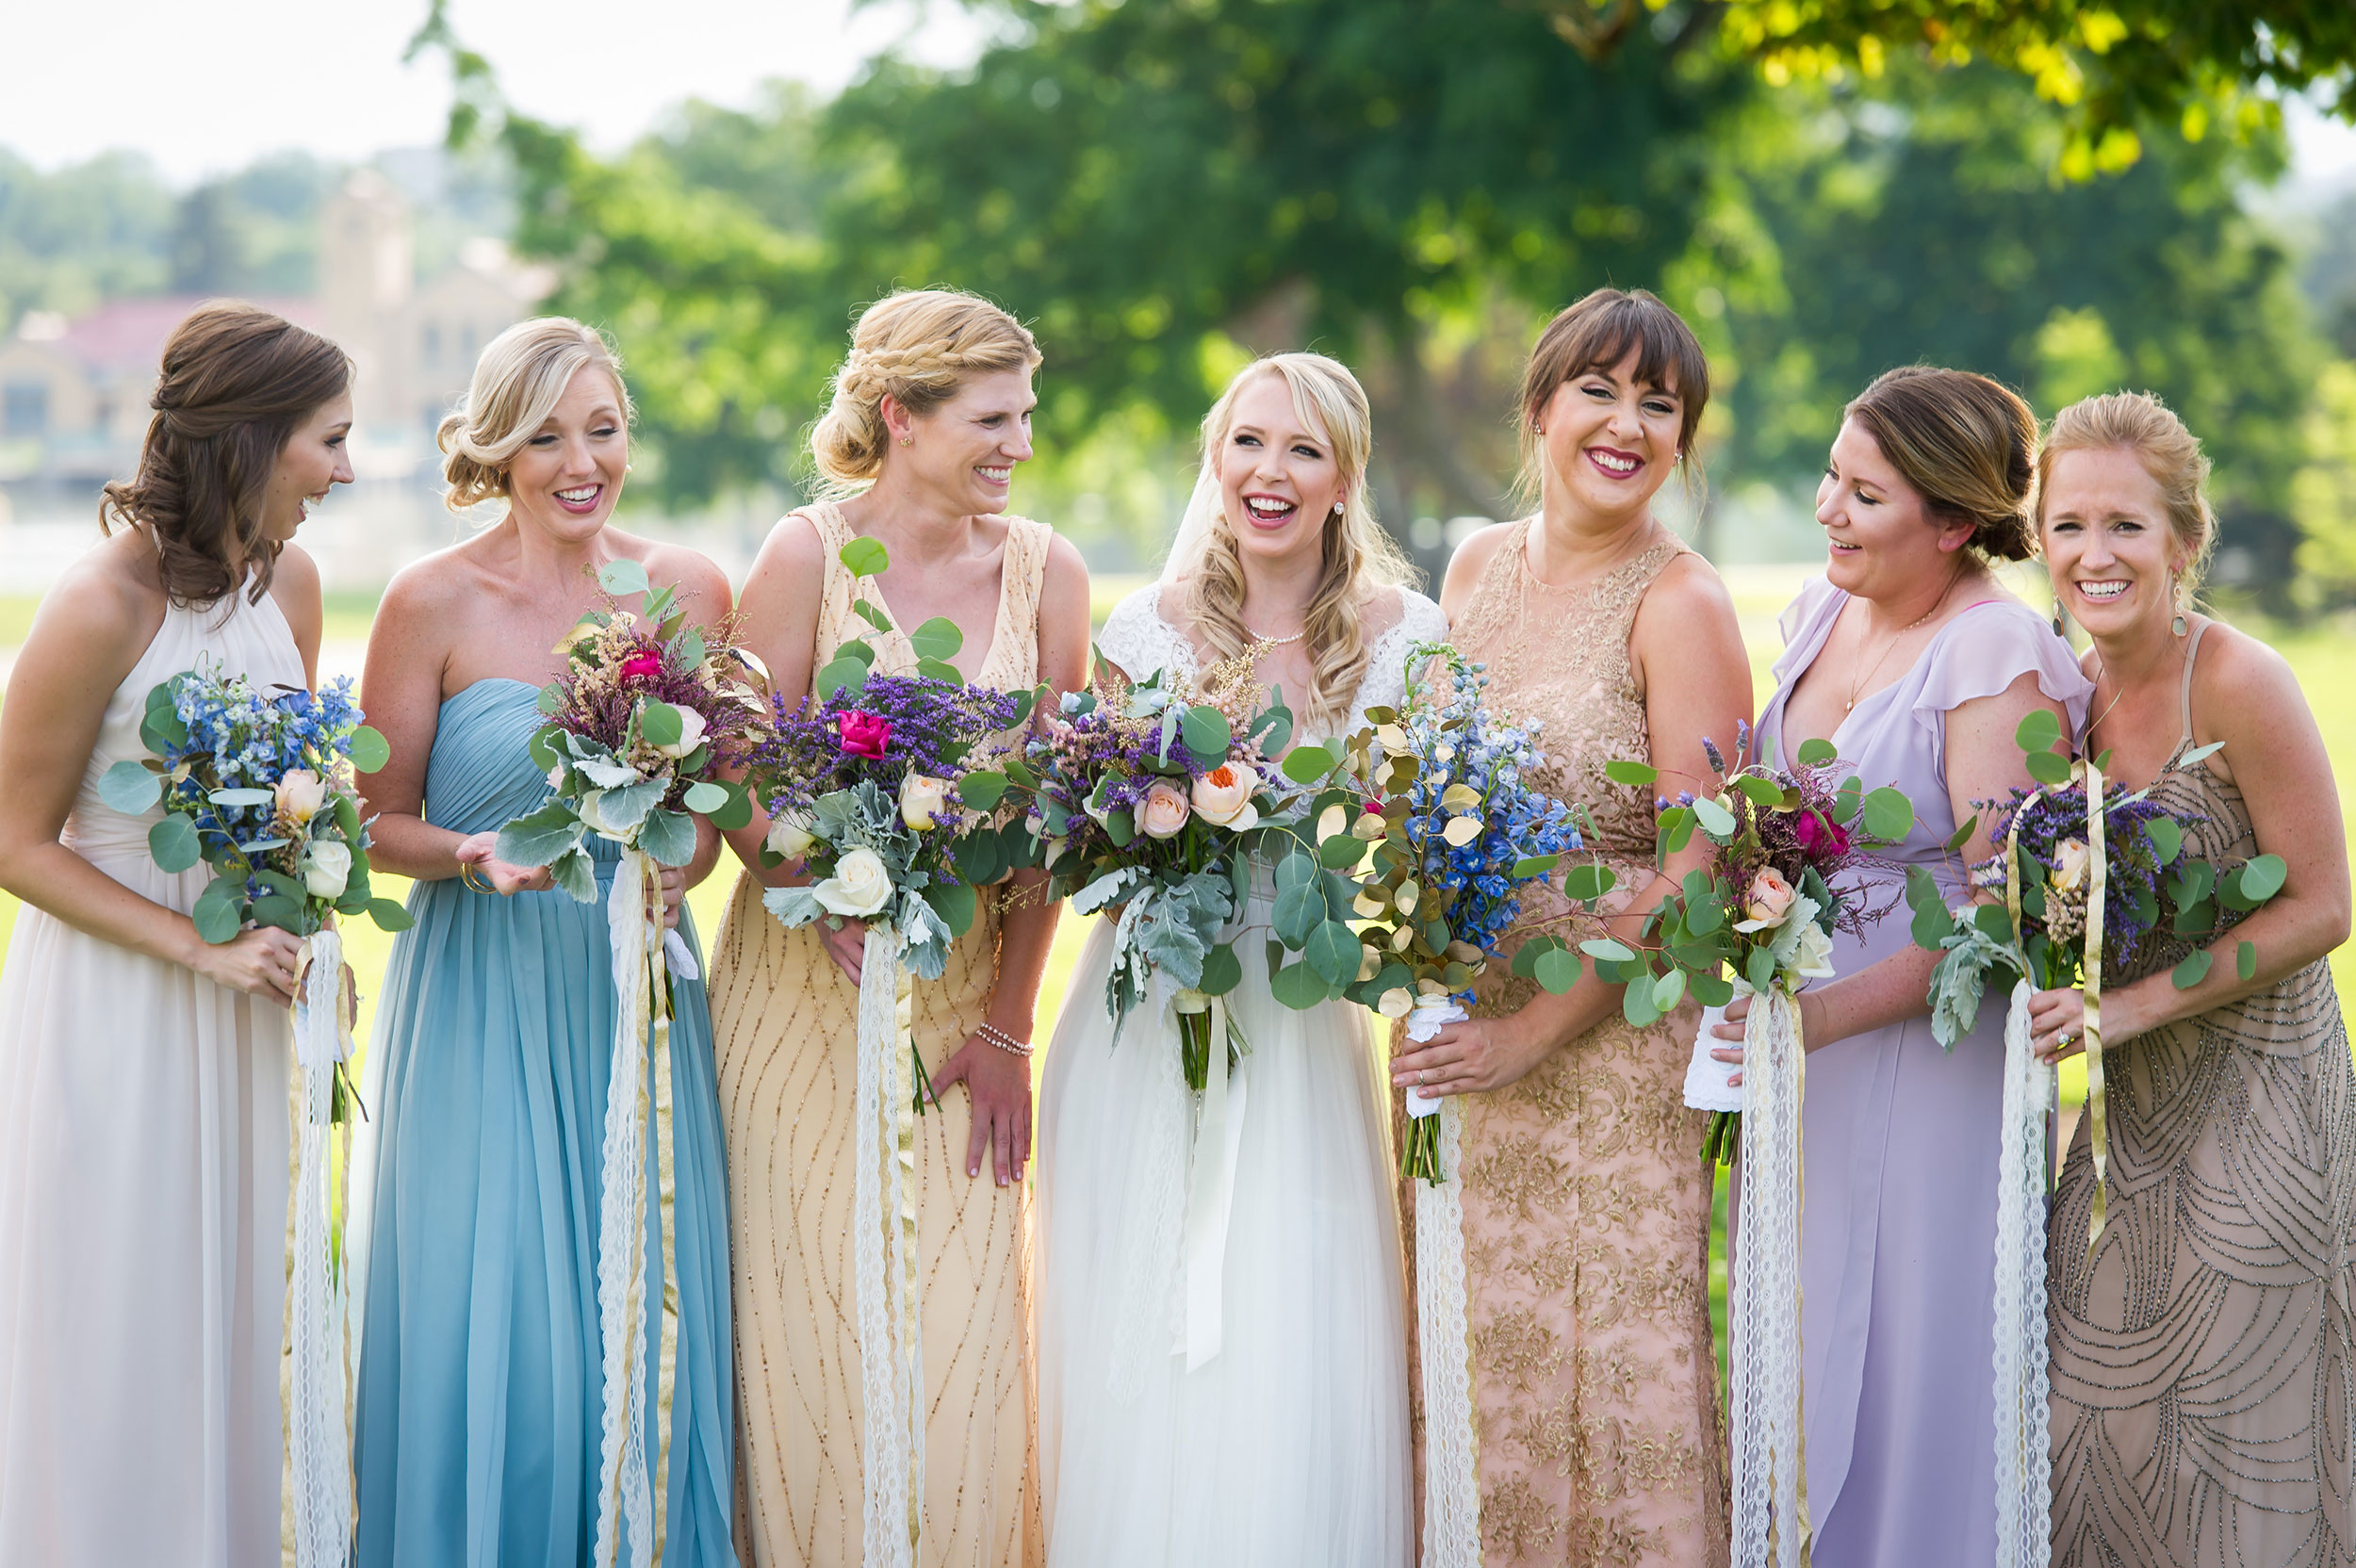 A Simple Southern Wedding in Denver, Colorado